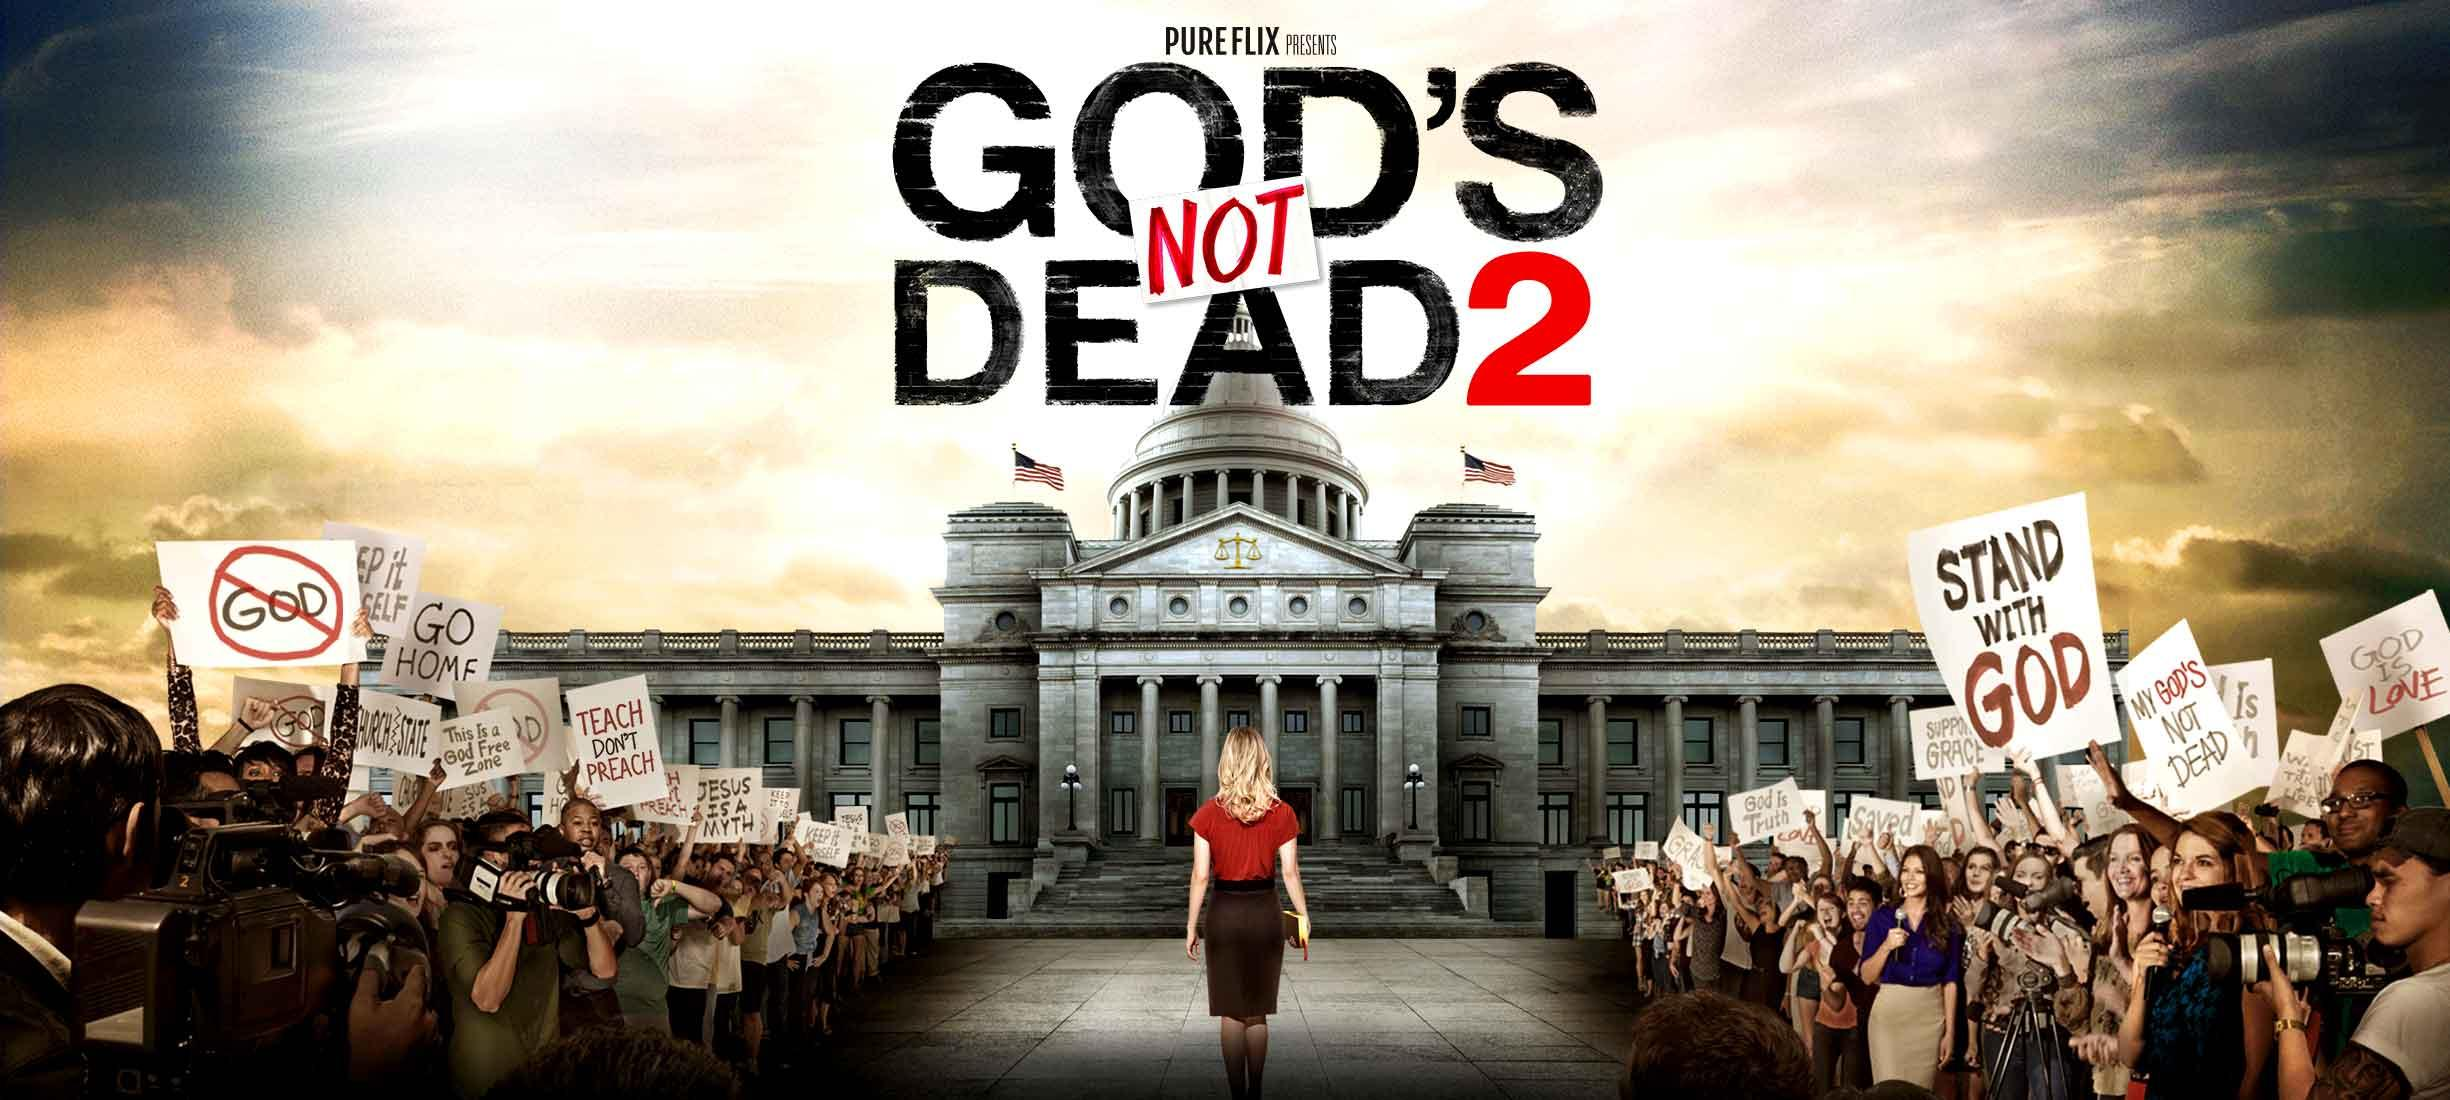 How to Watch God's Not Dead, God's Not Dead 2 Online for Free